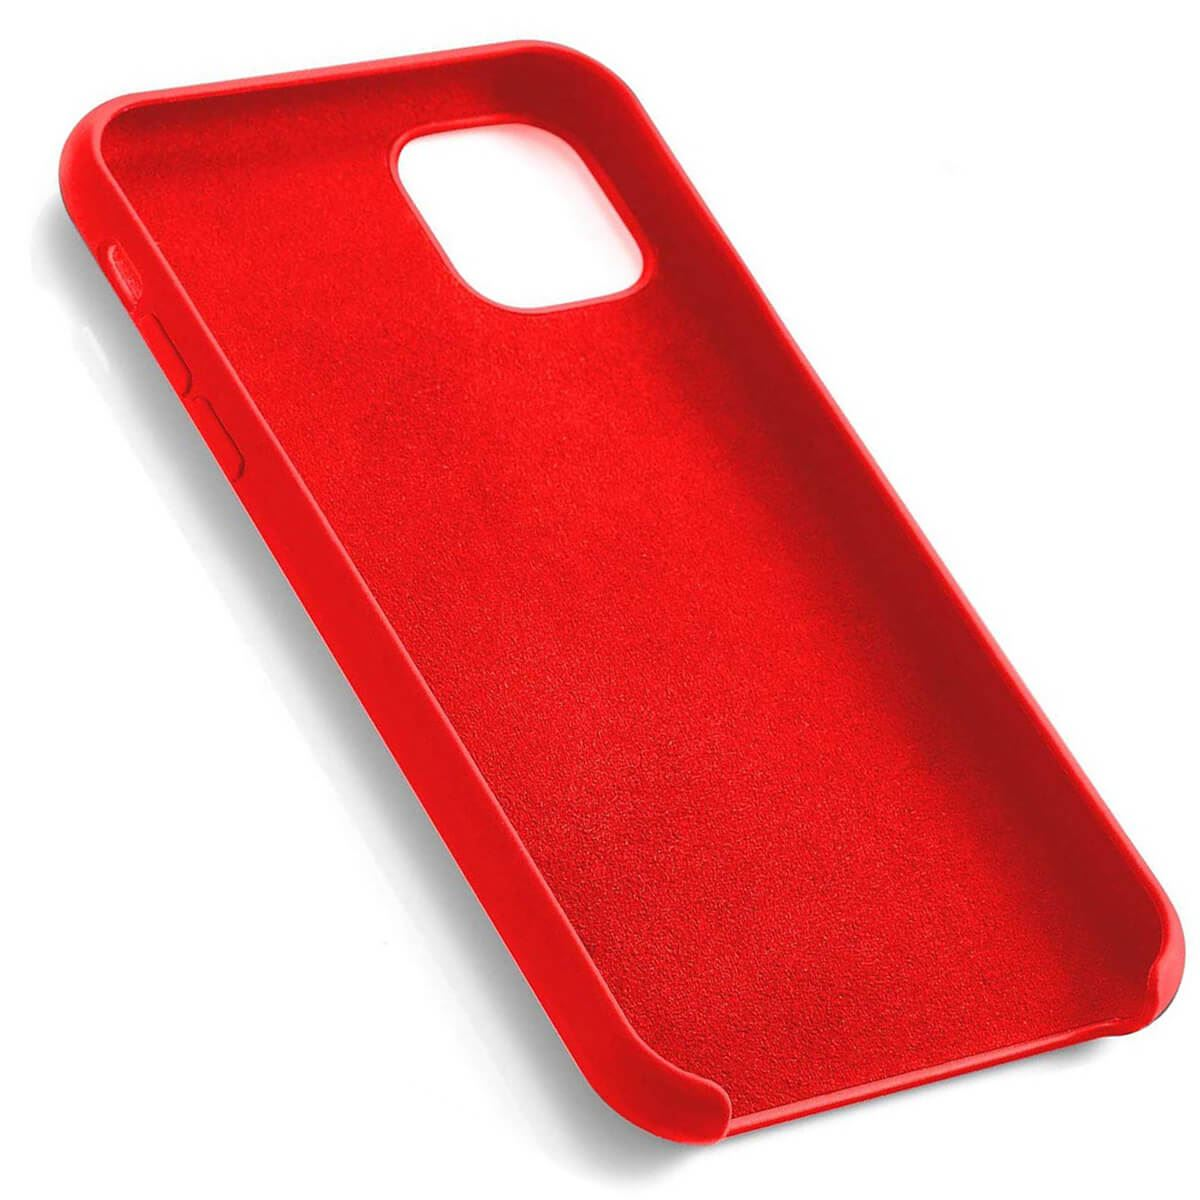 Liquid-Silicone-Shockproof-Case-For-Apple-iPhone-Soft-Matte-Back-Phone-Cover thumbnail 15